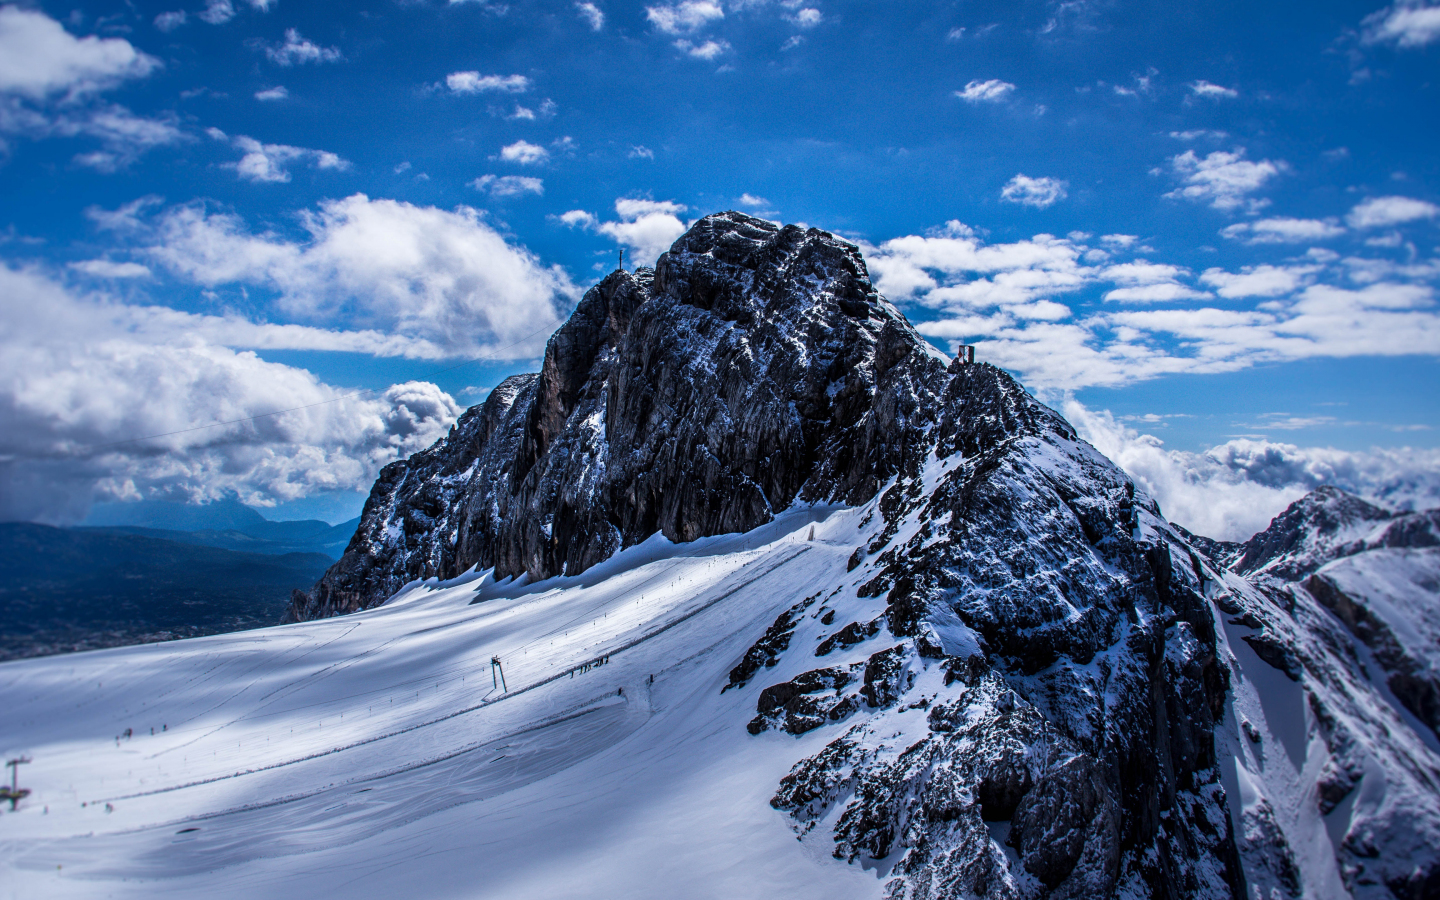 Download 1440x900 Wallpaper Swiss Mountains Winter Sunny